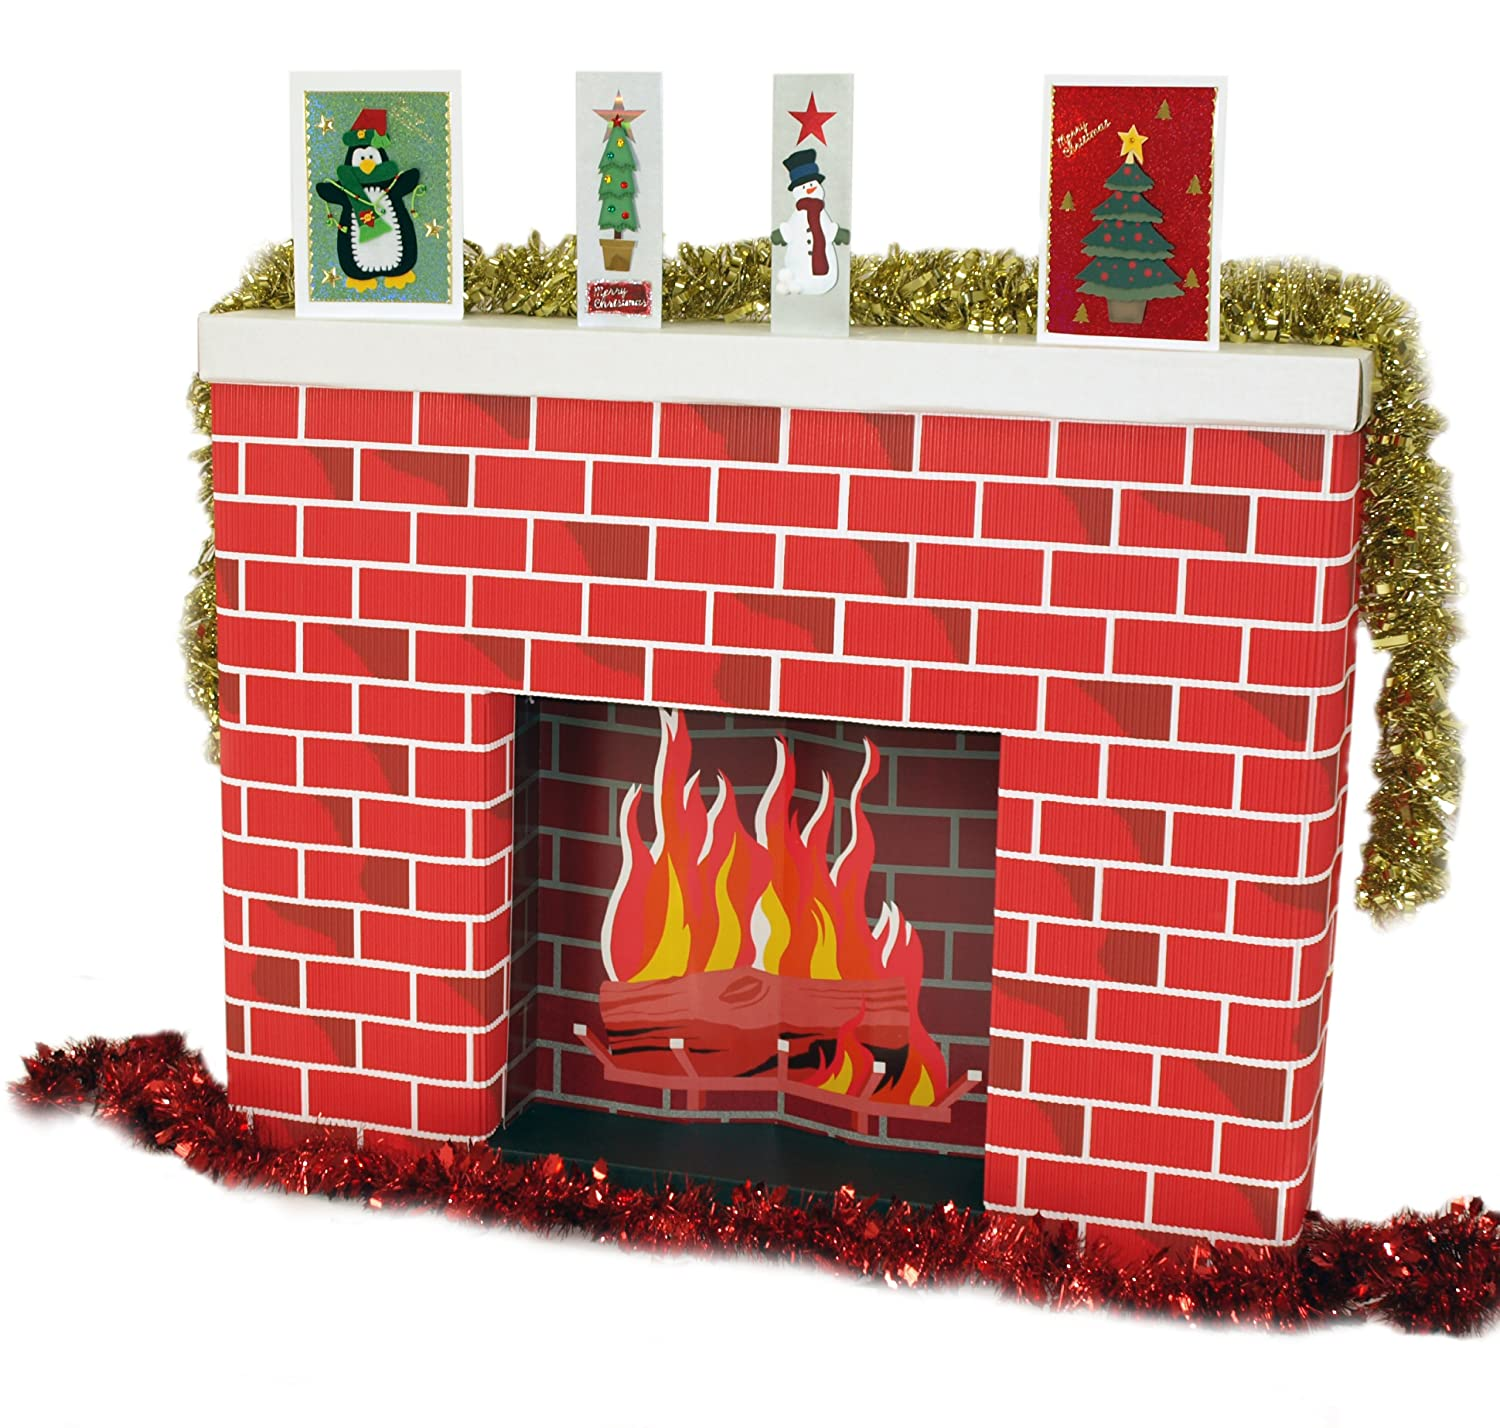 corrugated cardboard 3 dimensional life size fireplace 965 x 175 x